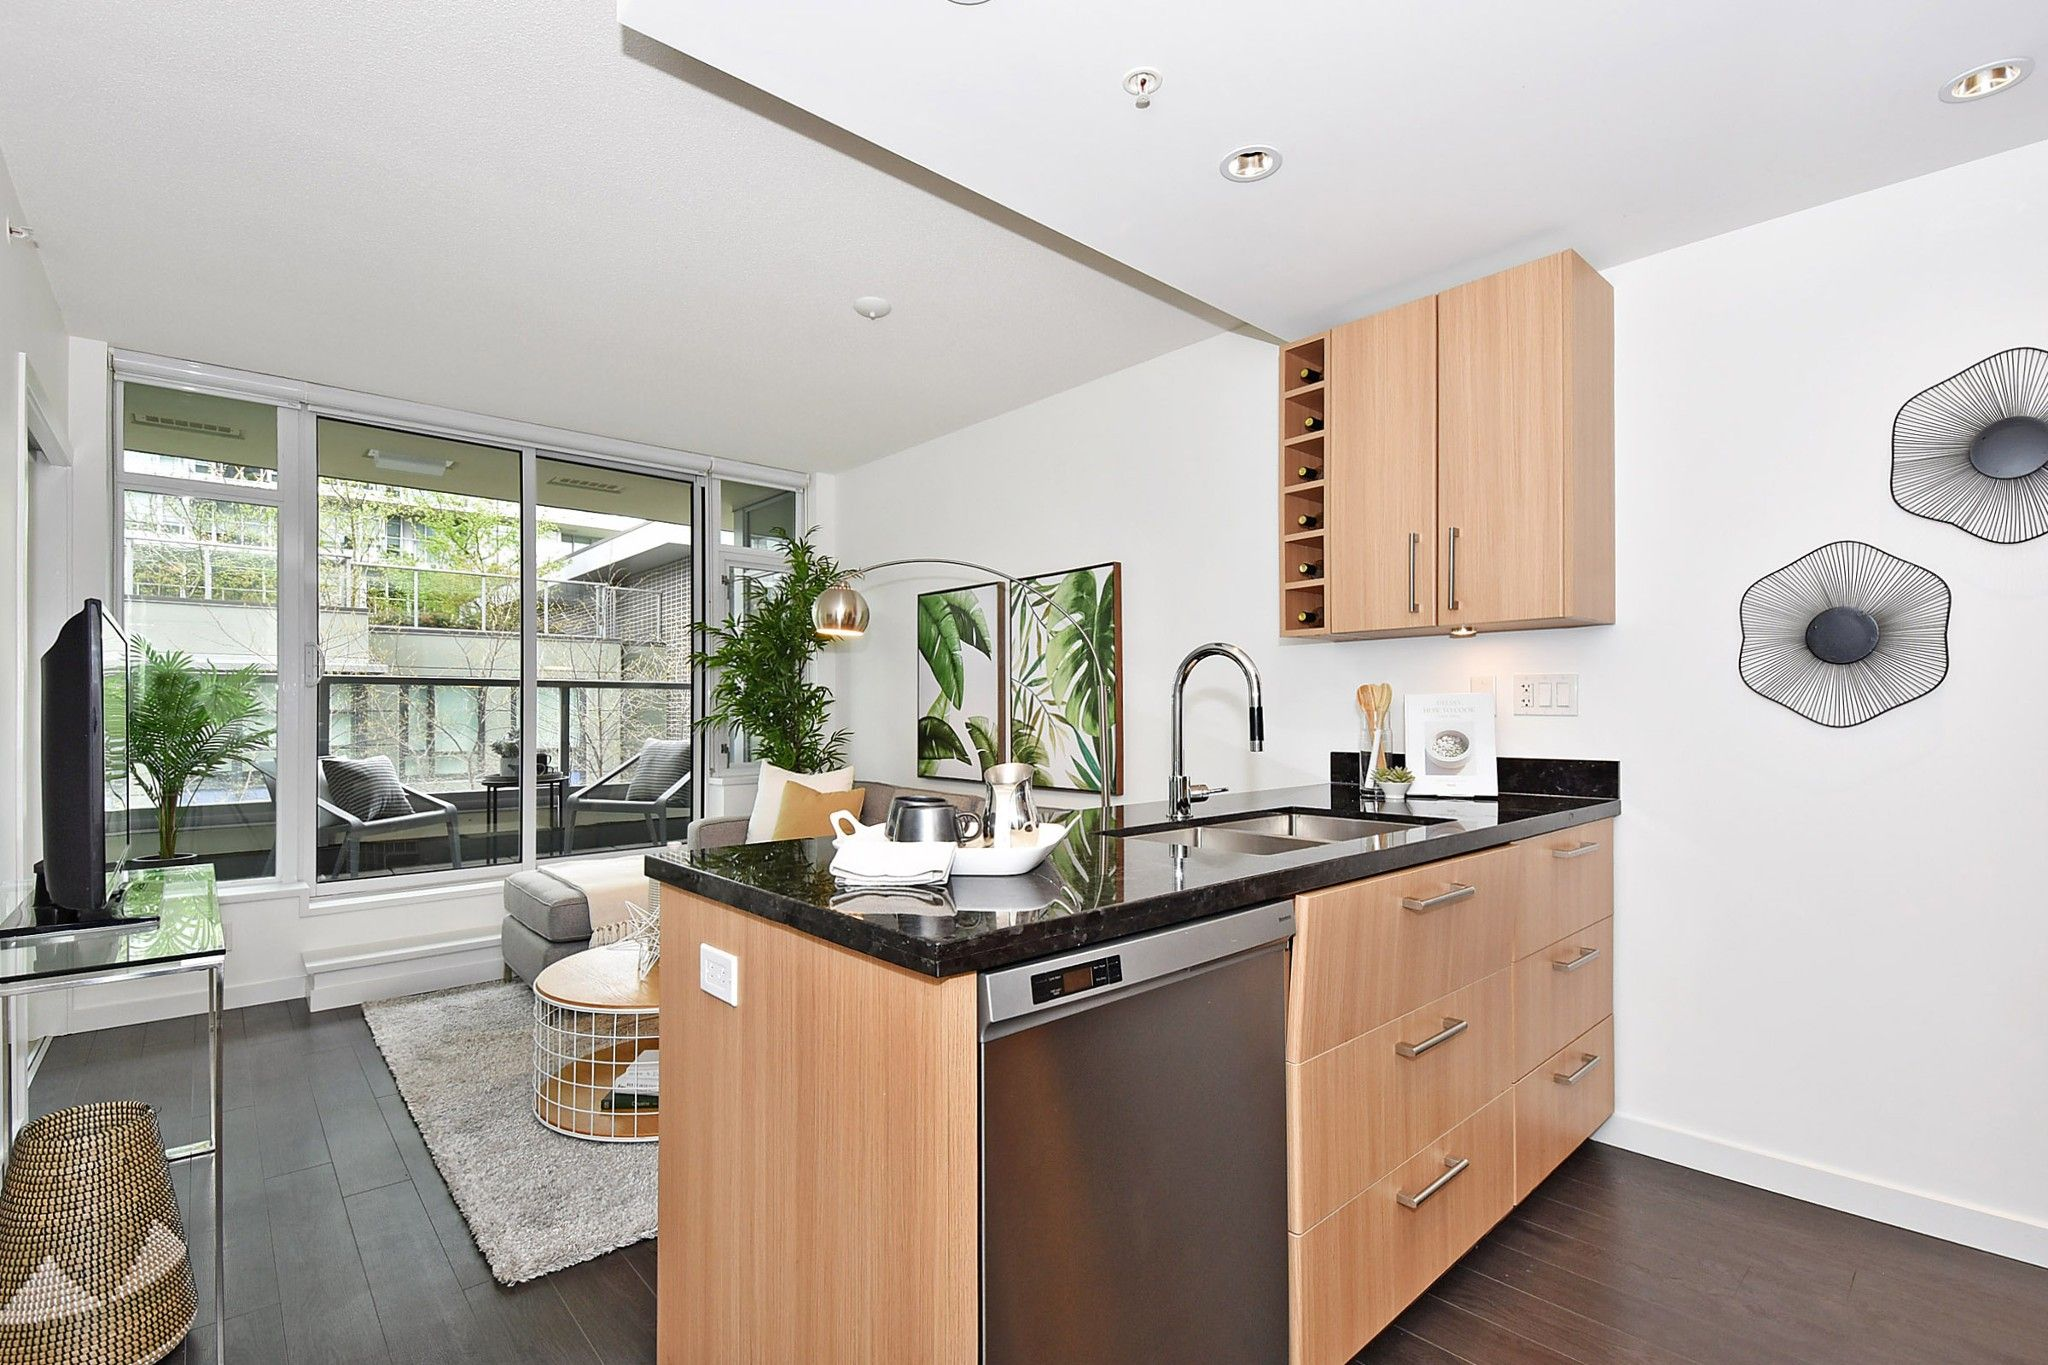 """Photo 9: Photos: 306 138 W 1ST Avenue in Vancouver: False Creek Condo for sale in """"WALL CENTRE FALSE CREEK"""" (Vancouver West)  : MLS®# R2360592"""